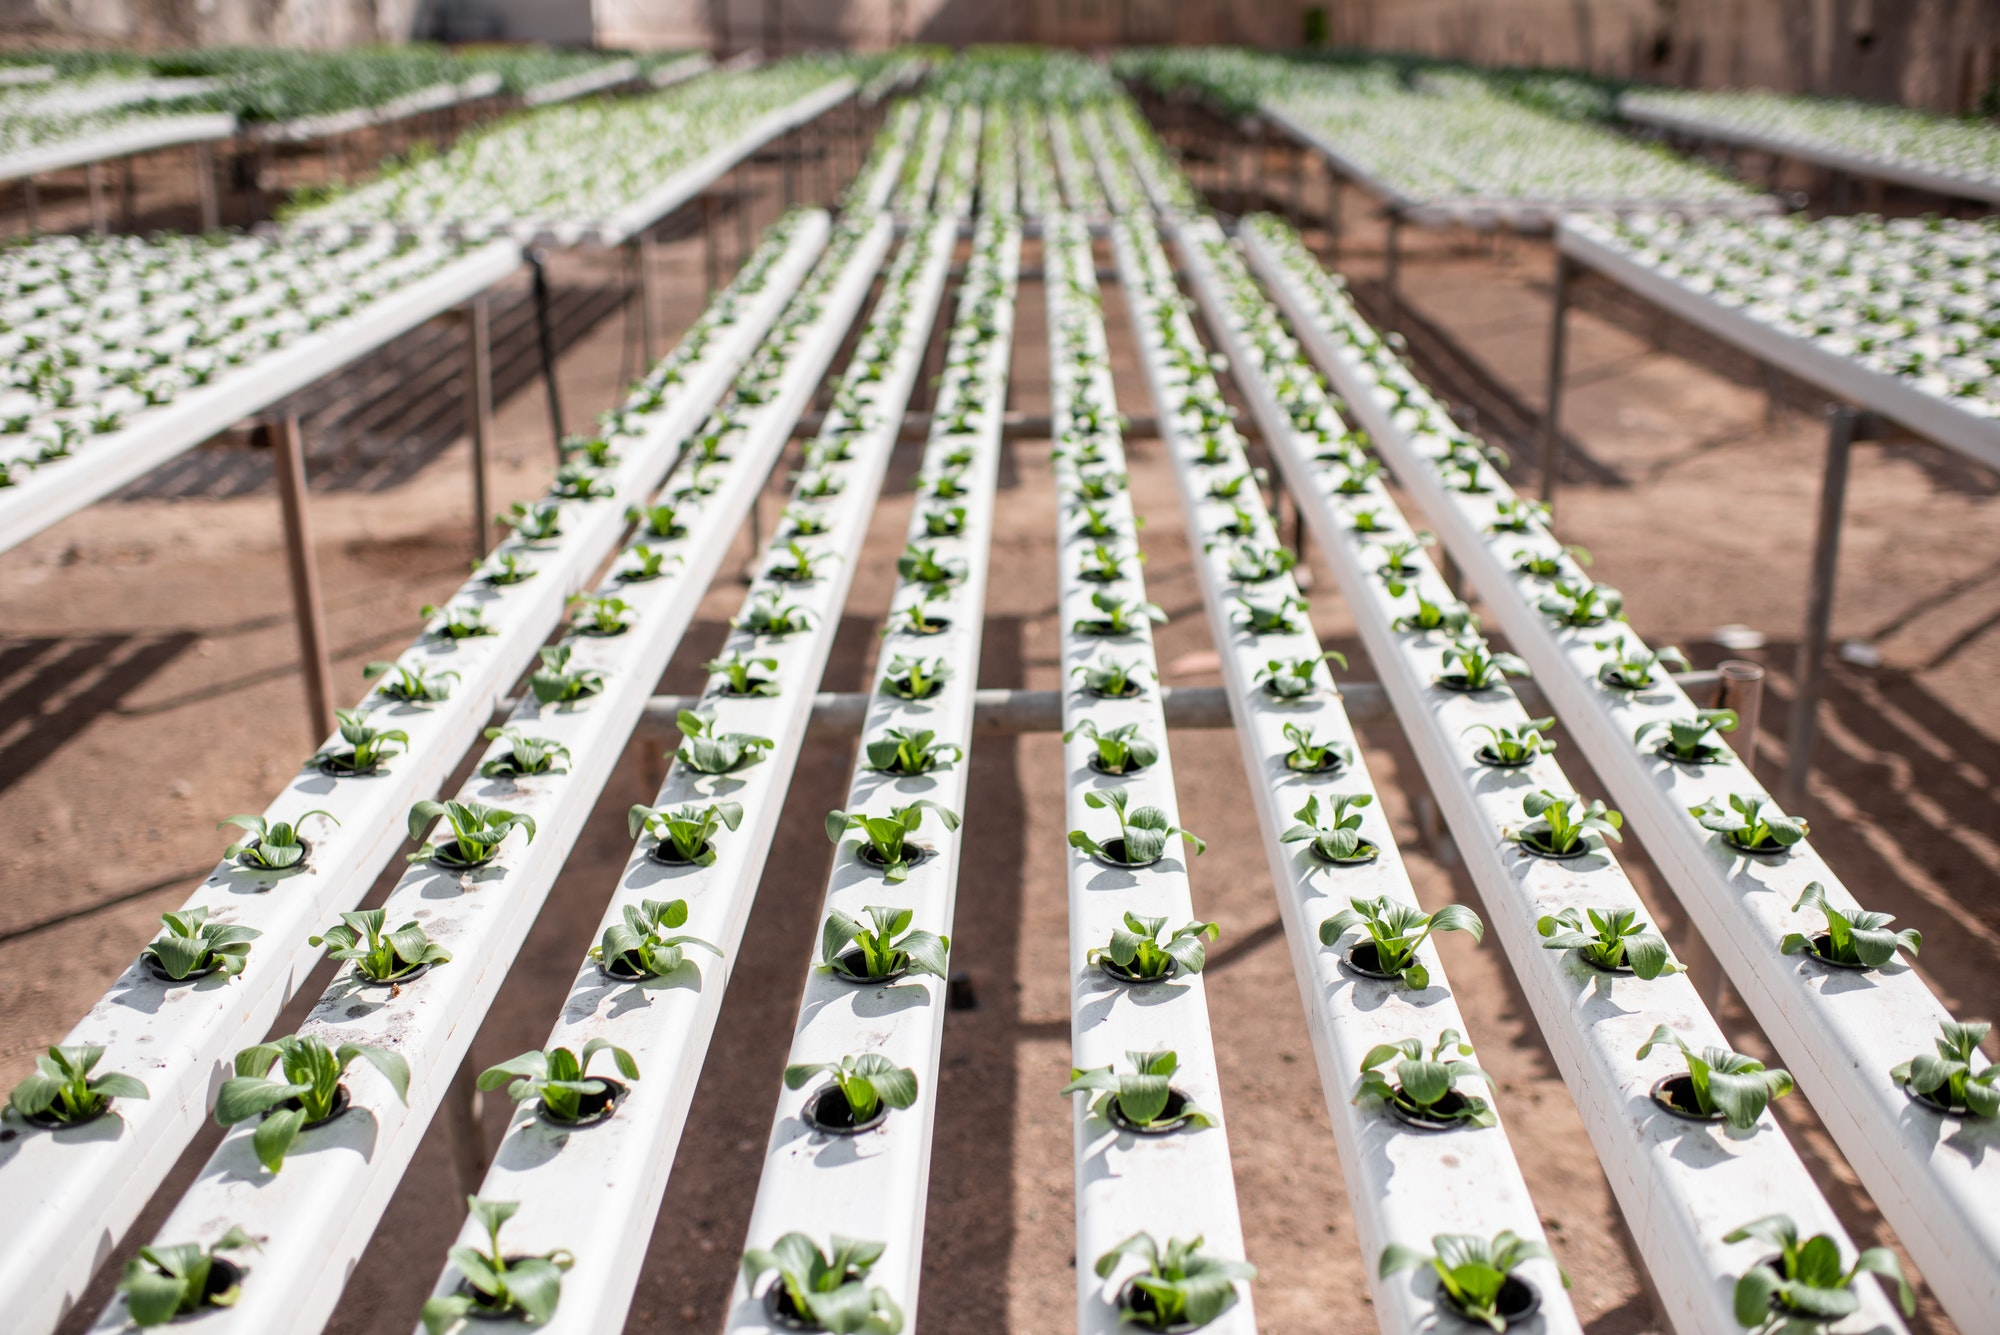 Indoor Growers World - Green lettuce growing in Hydroponics / Aquaponics Greenhouse